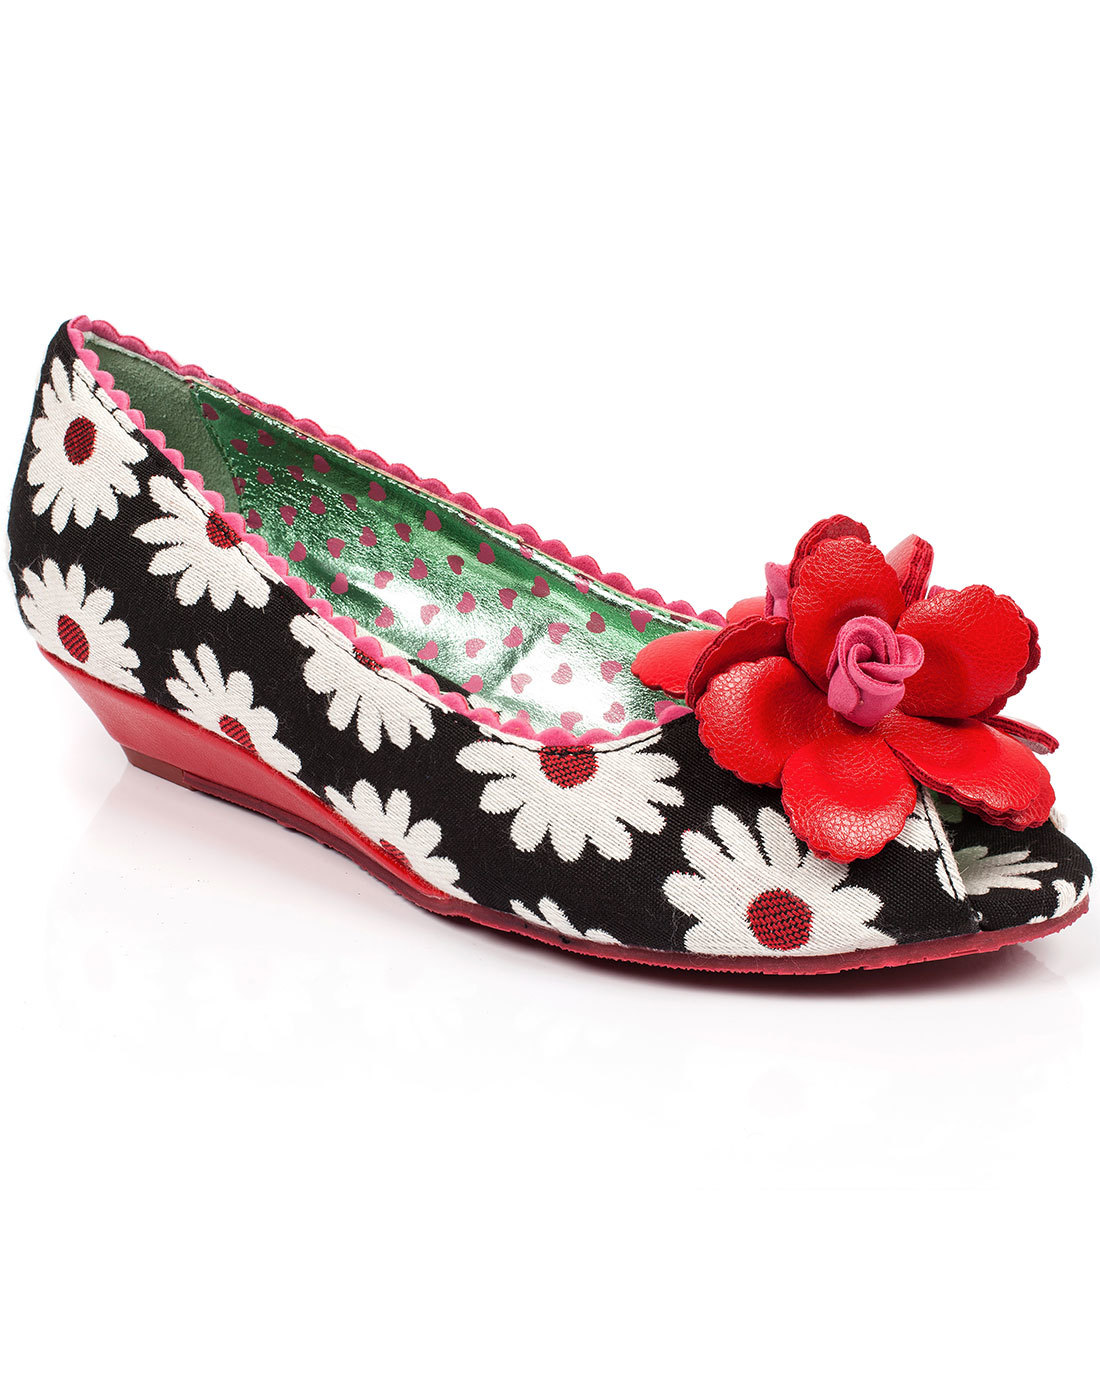 Daisy Delight POETIC LICENCE 60s Mod Floral Wedges